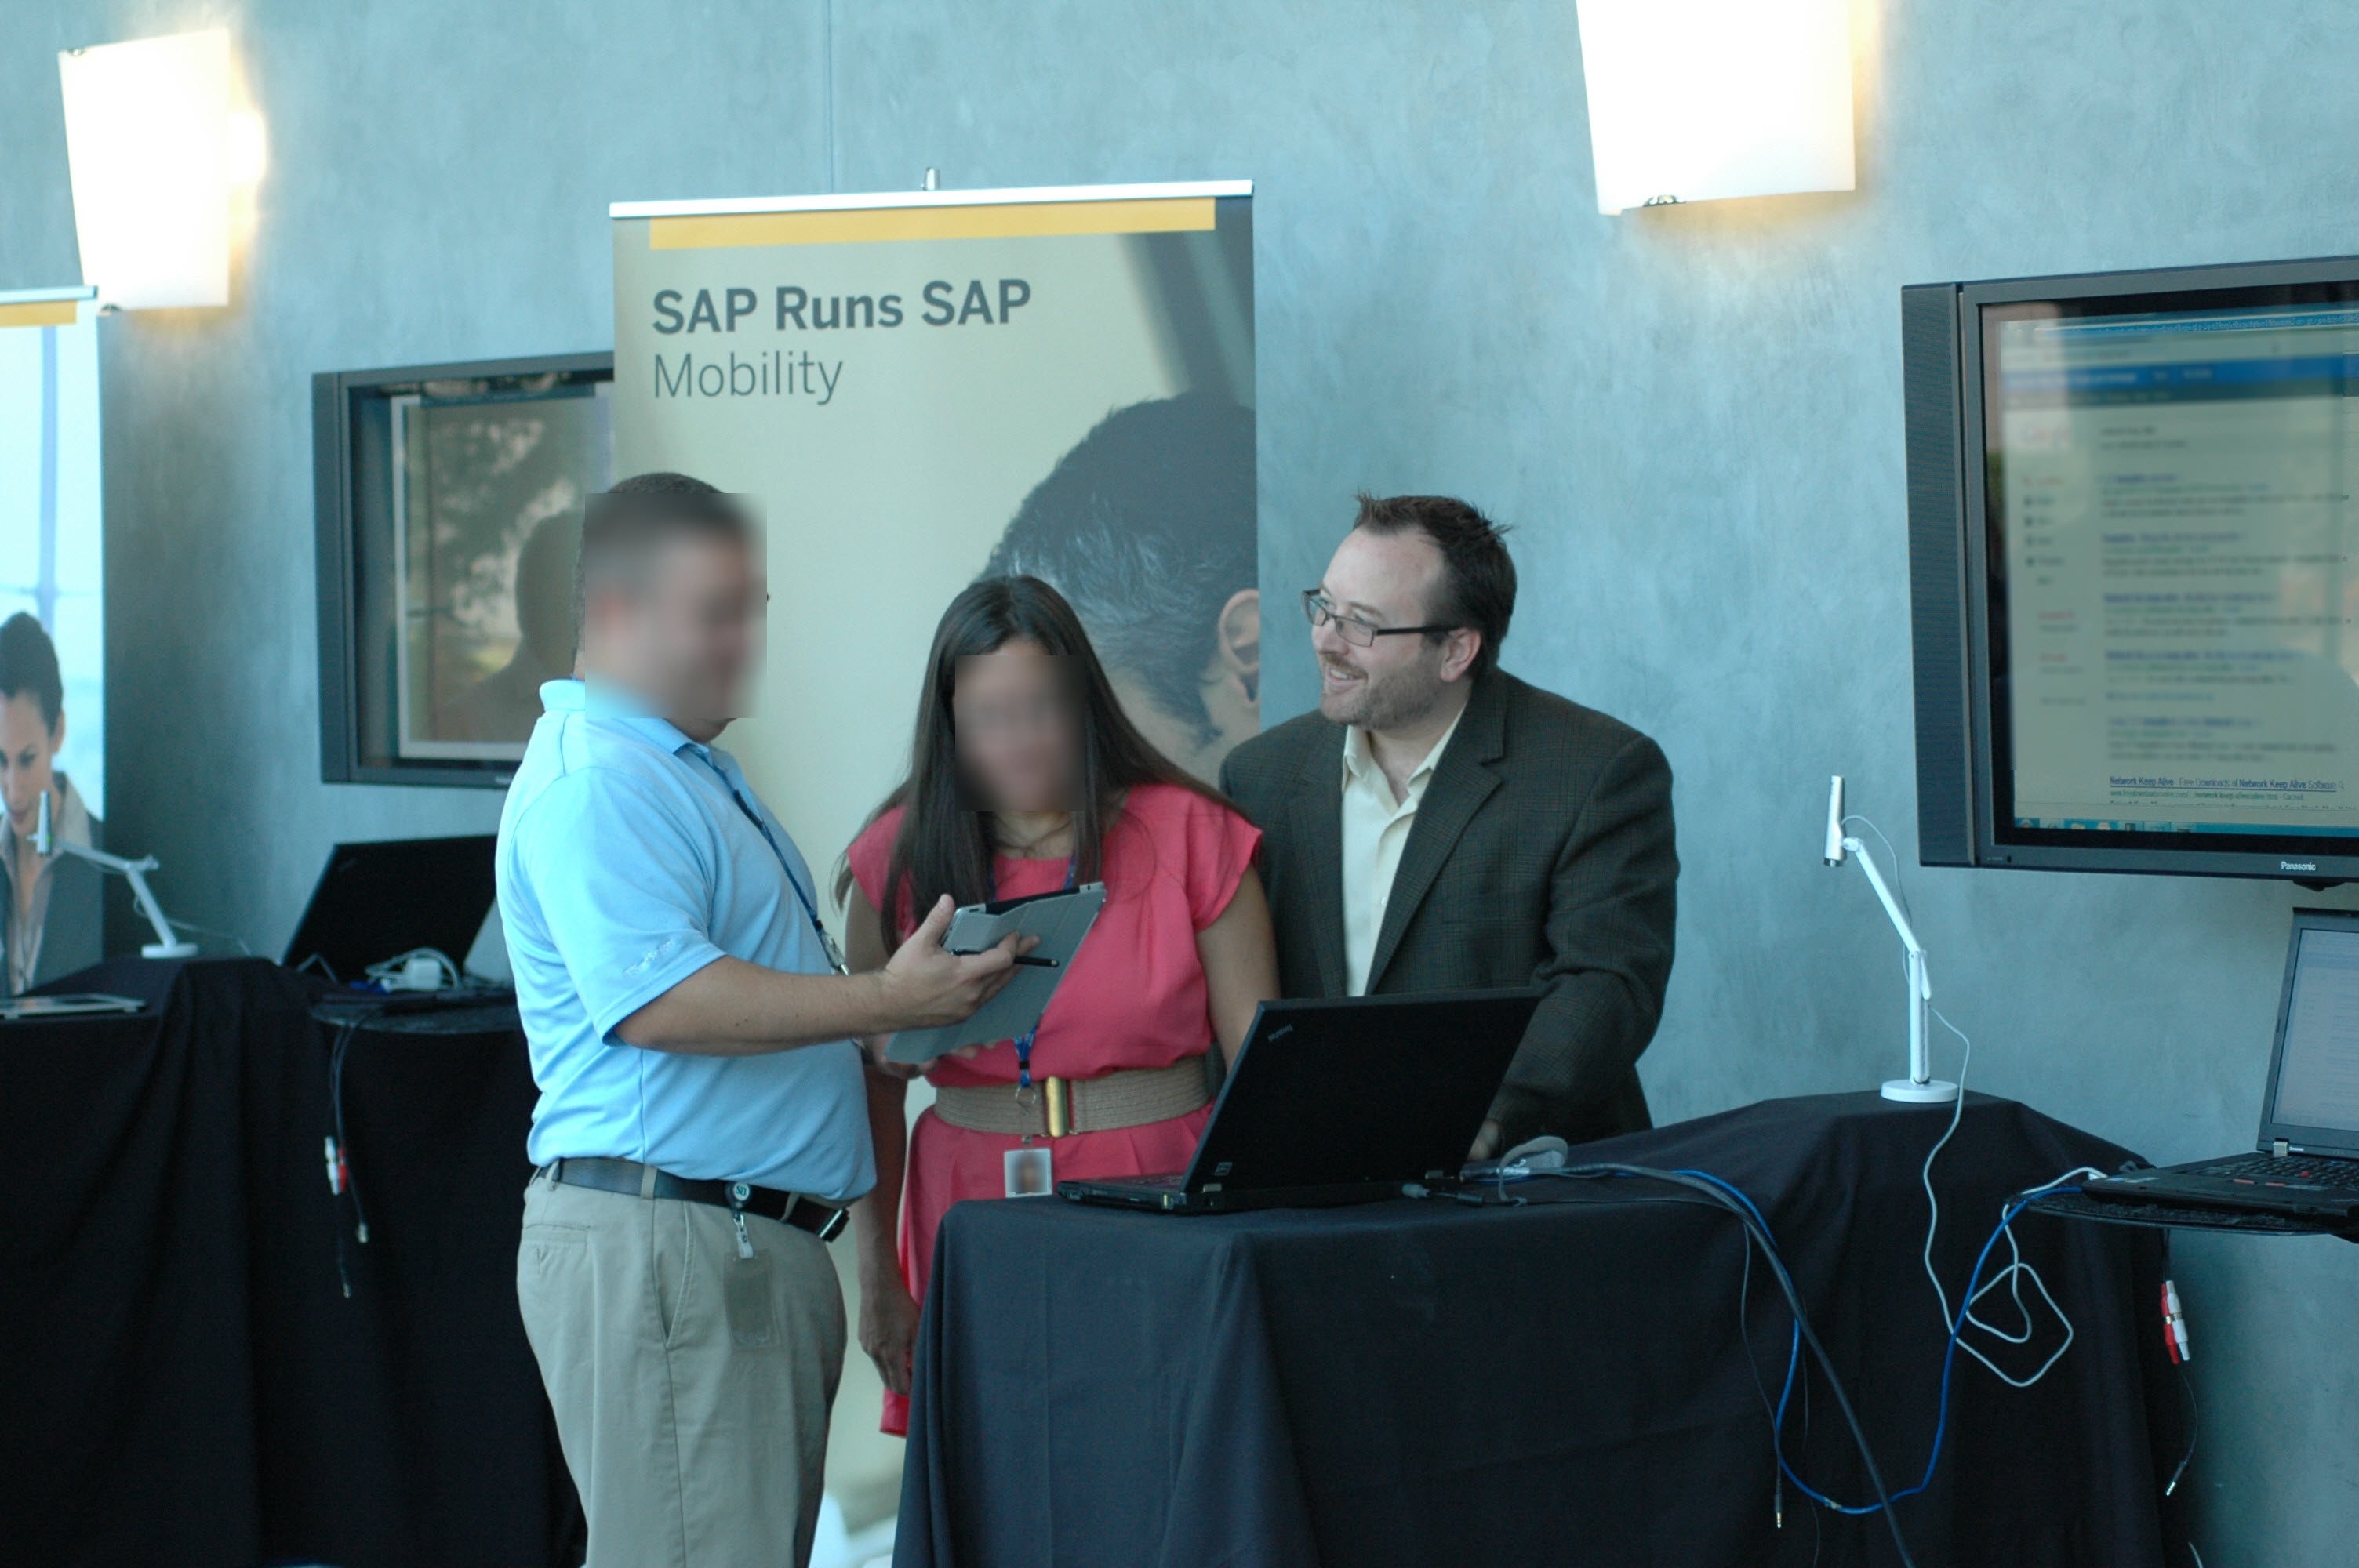 sap runs sap booth v2.JPG